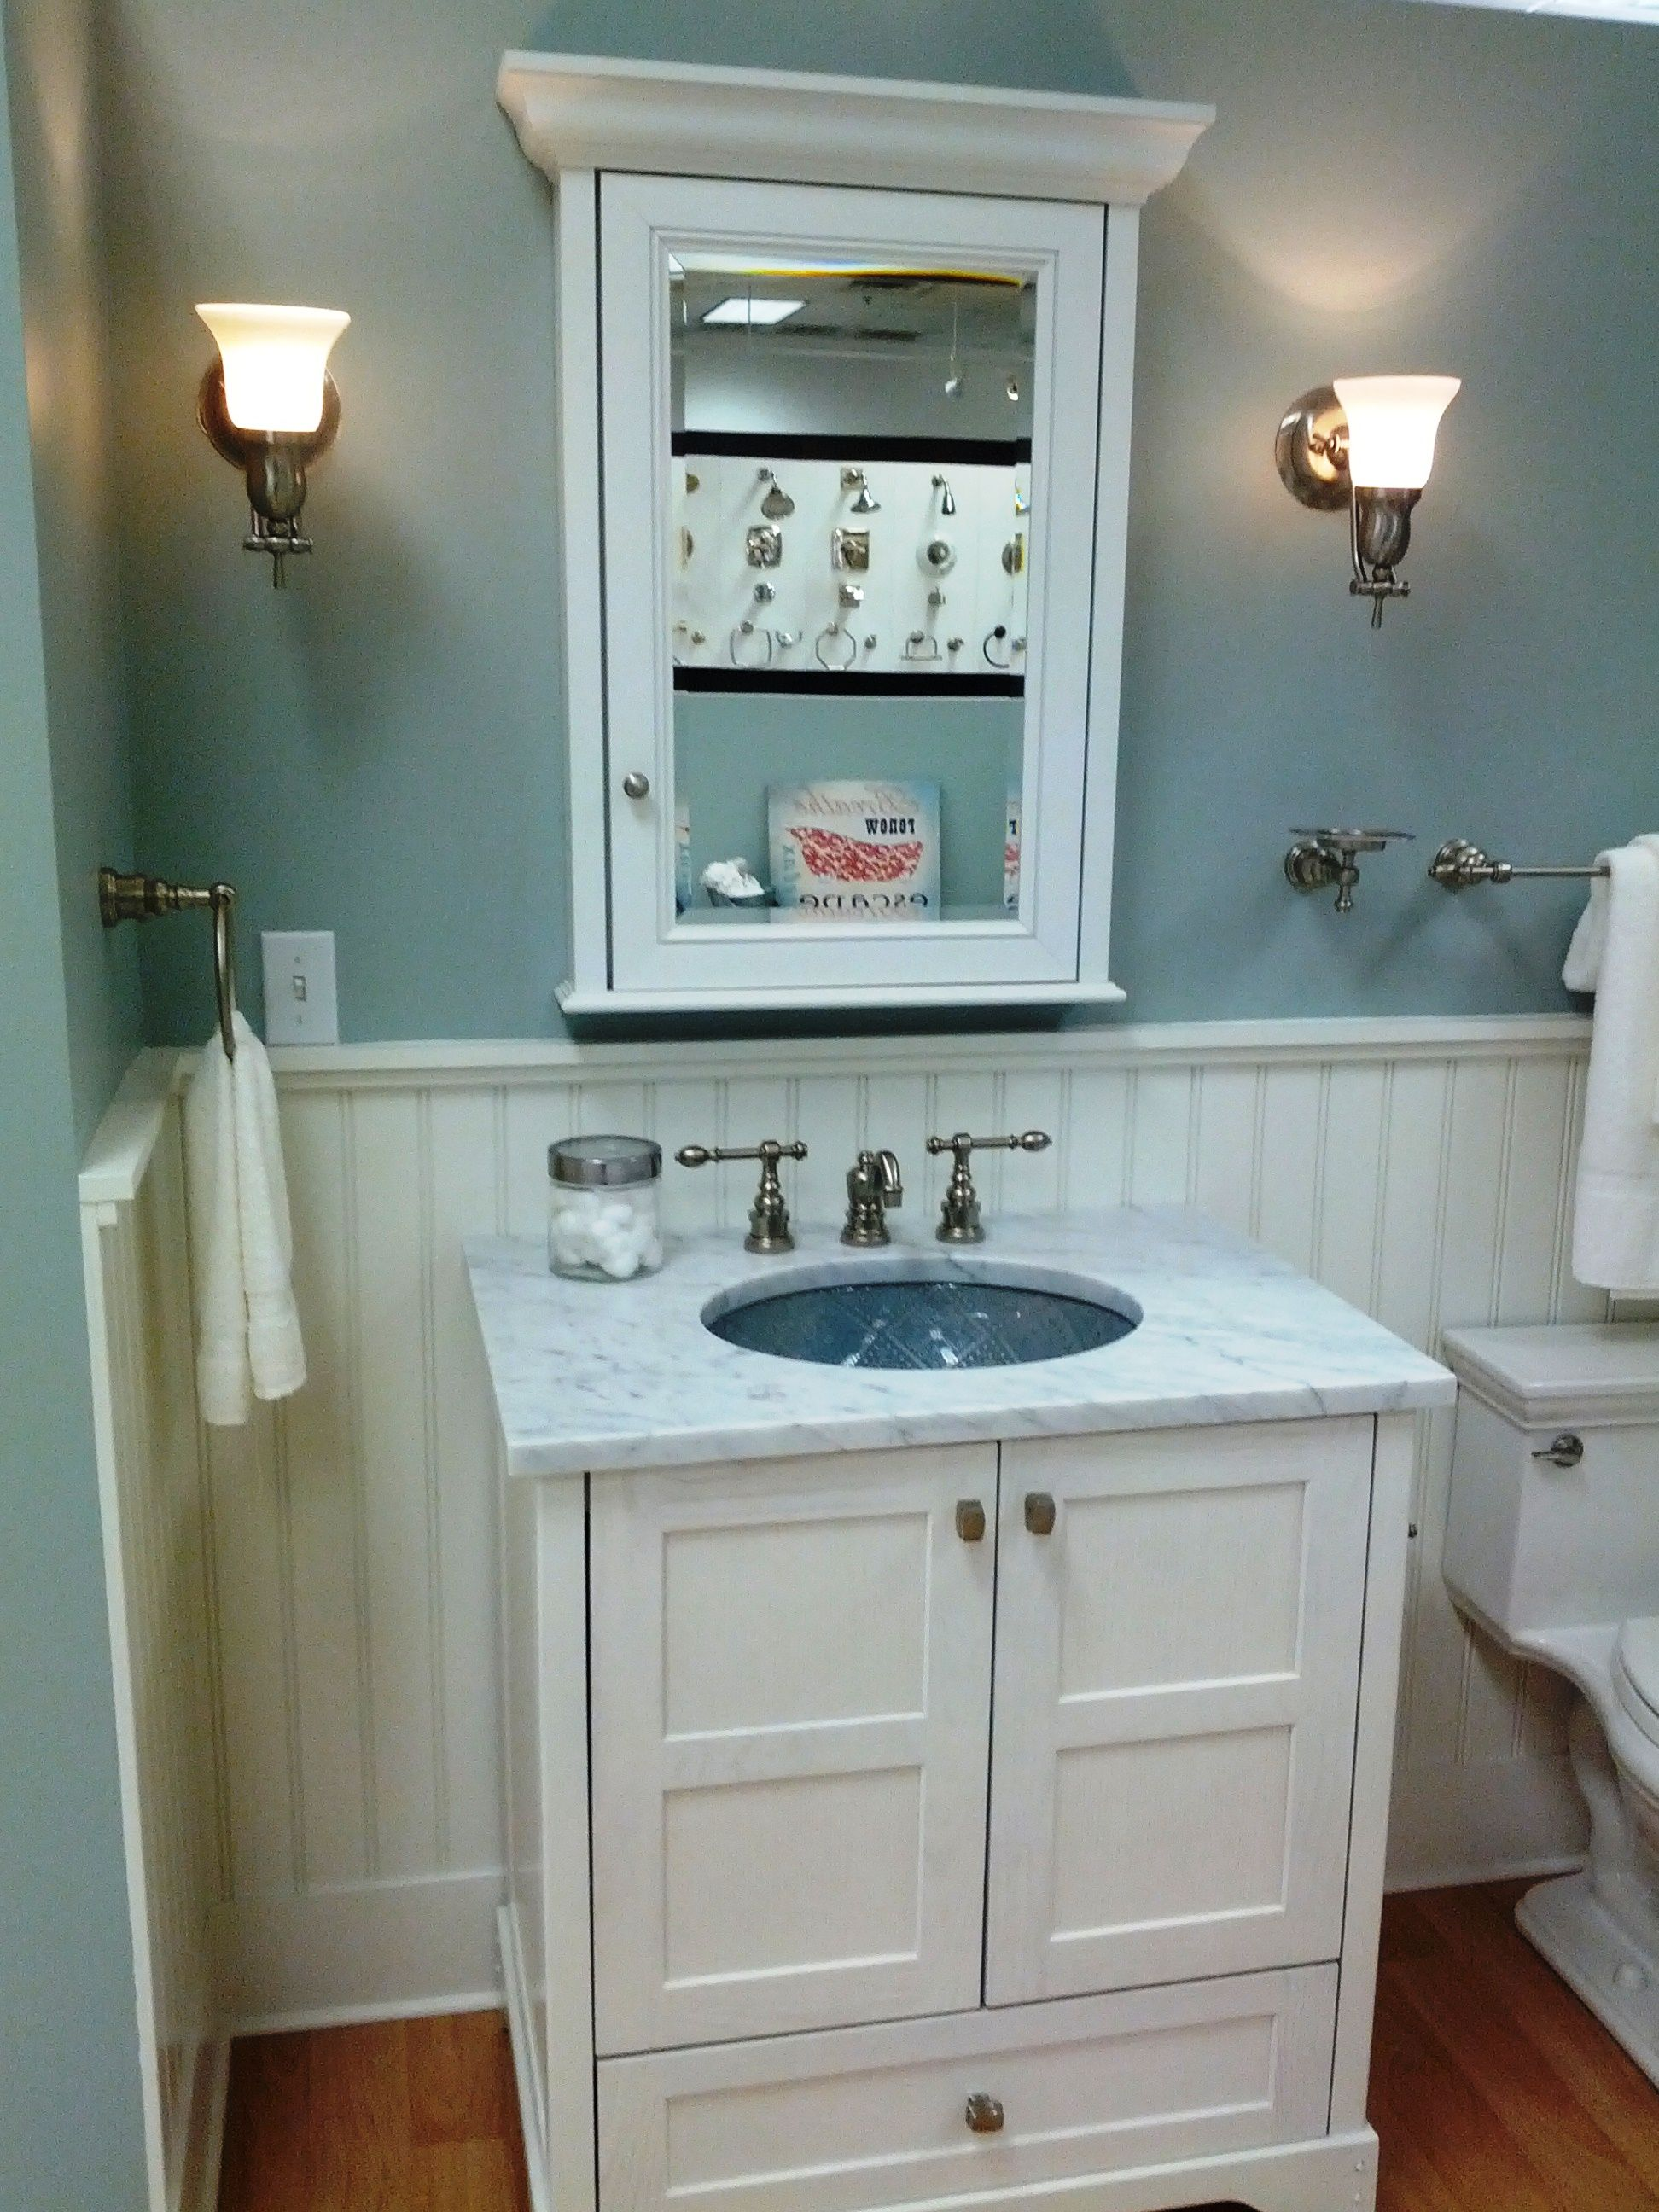 Small bathroom decorating ideas color - Room Colors Wainscoting White Wainscoting Tub Base With Medium Blue Wall Color A Small Bathroom Decoratingideas